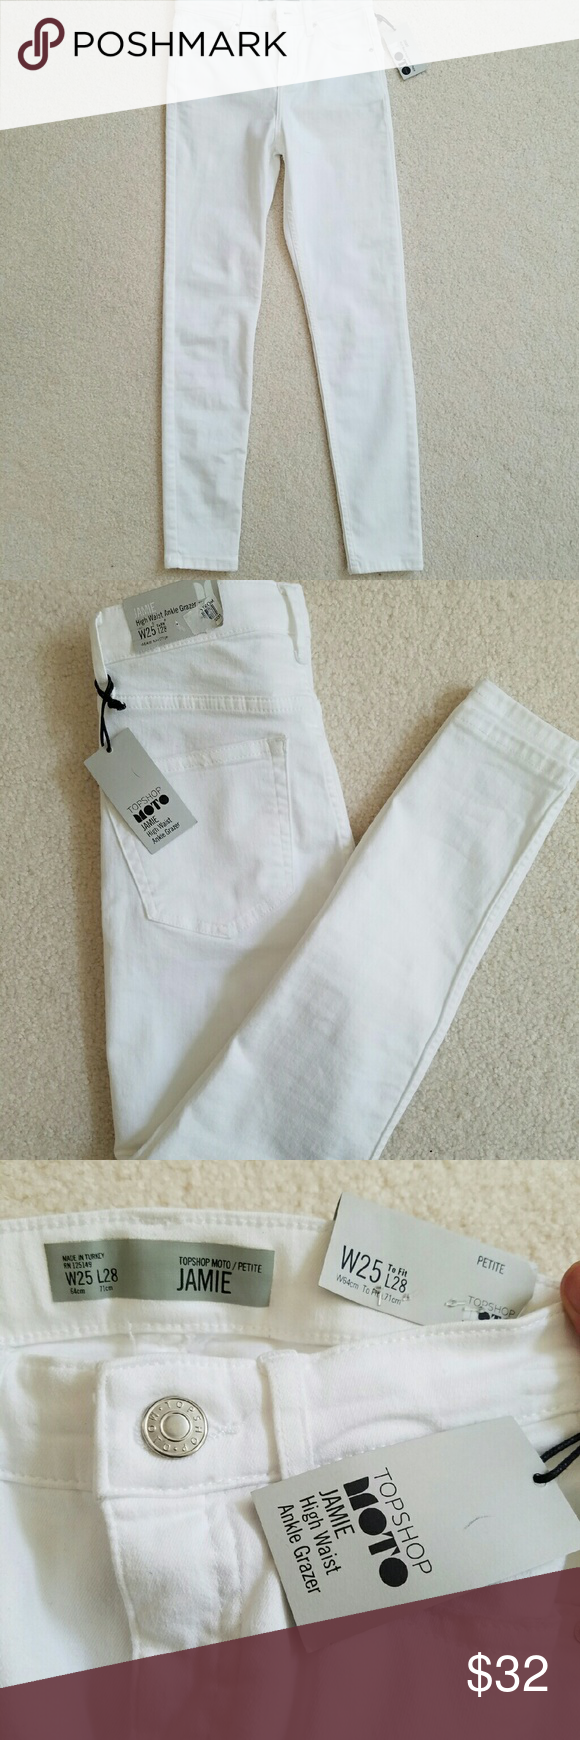 NEW Topshop MOTO Jamie white skinny jeans (petite) * New with tags!!! Purchased at Nordstrom  * W25, length 28. High waist jeans  * runs small. Fits more like 24 in my opinion Topshop Jeans Skinny